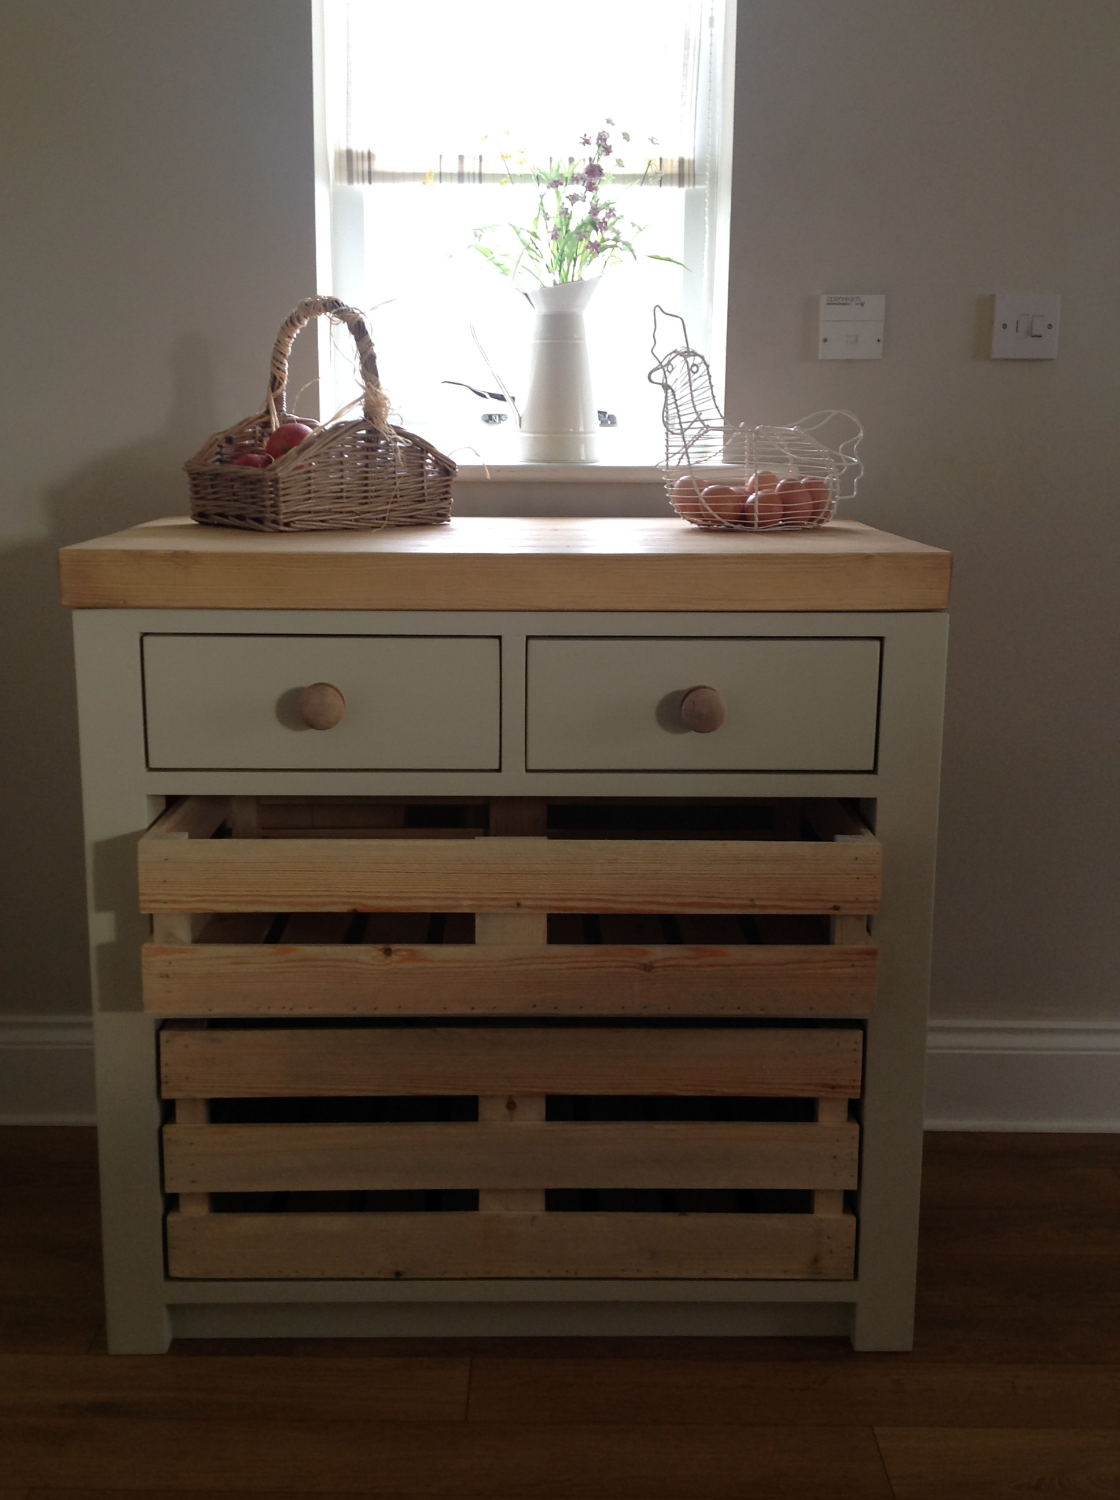 Handmade - Kitchen Unit